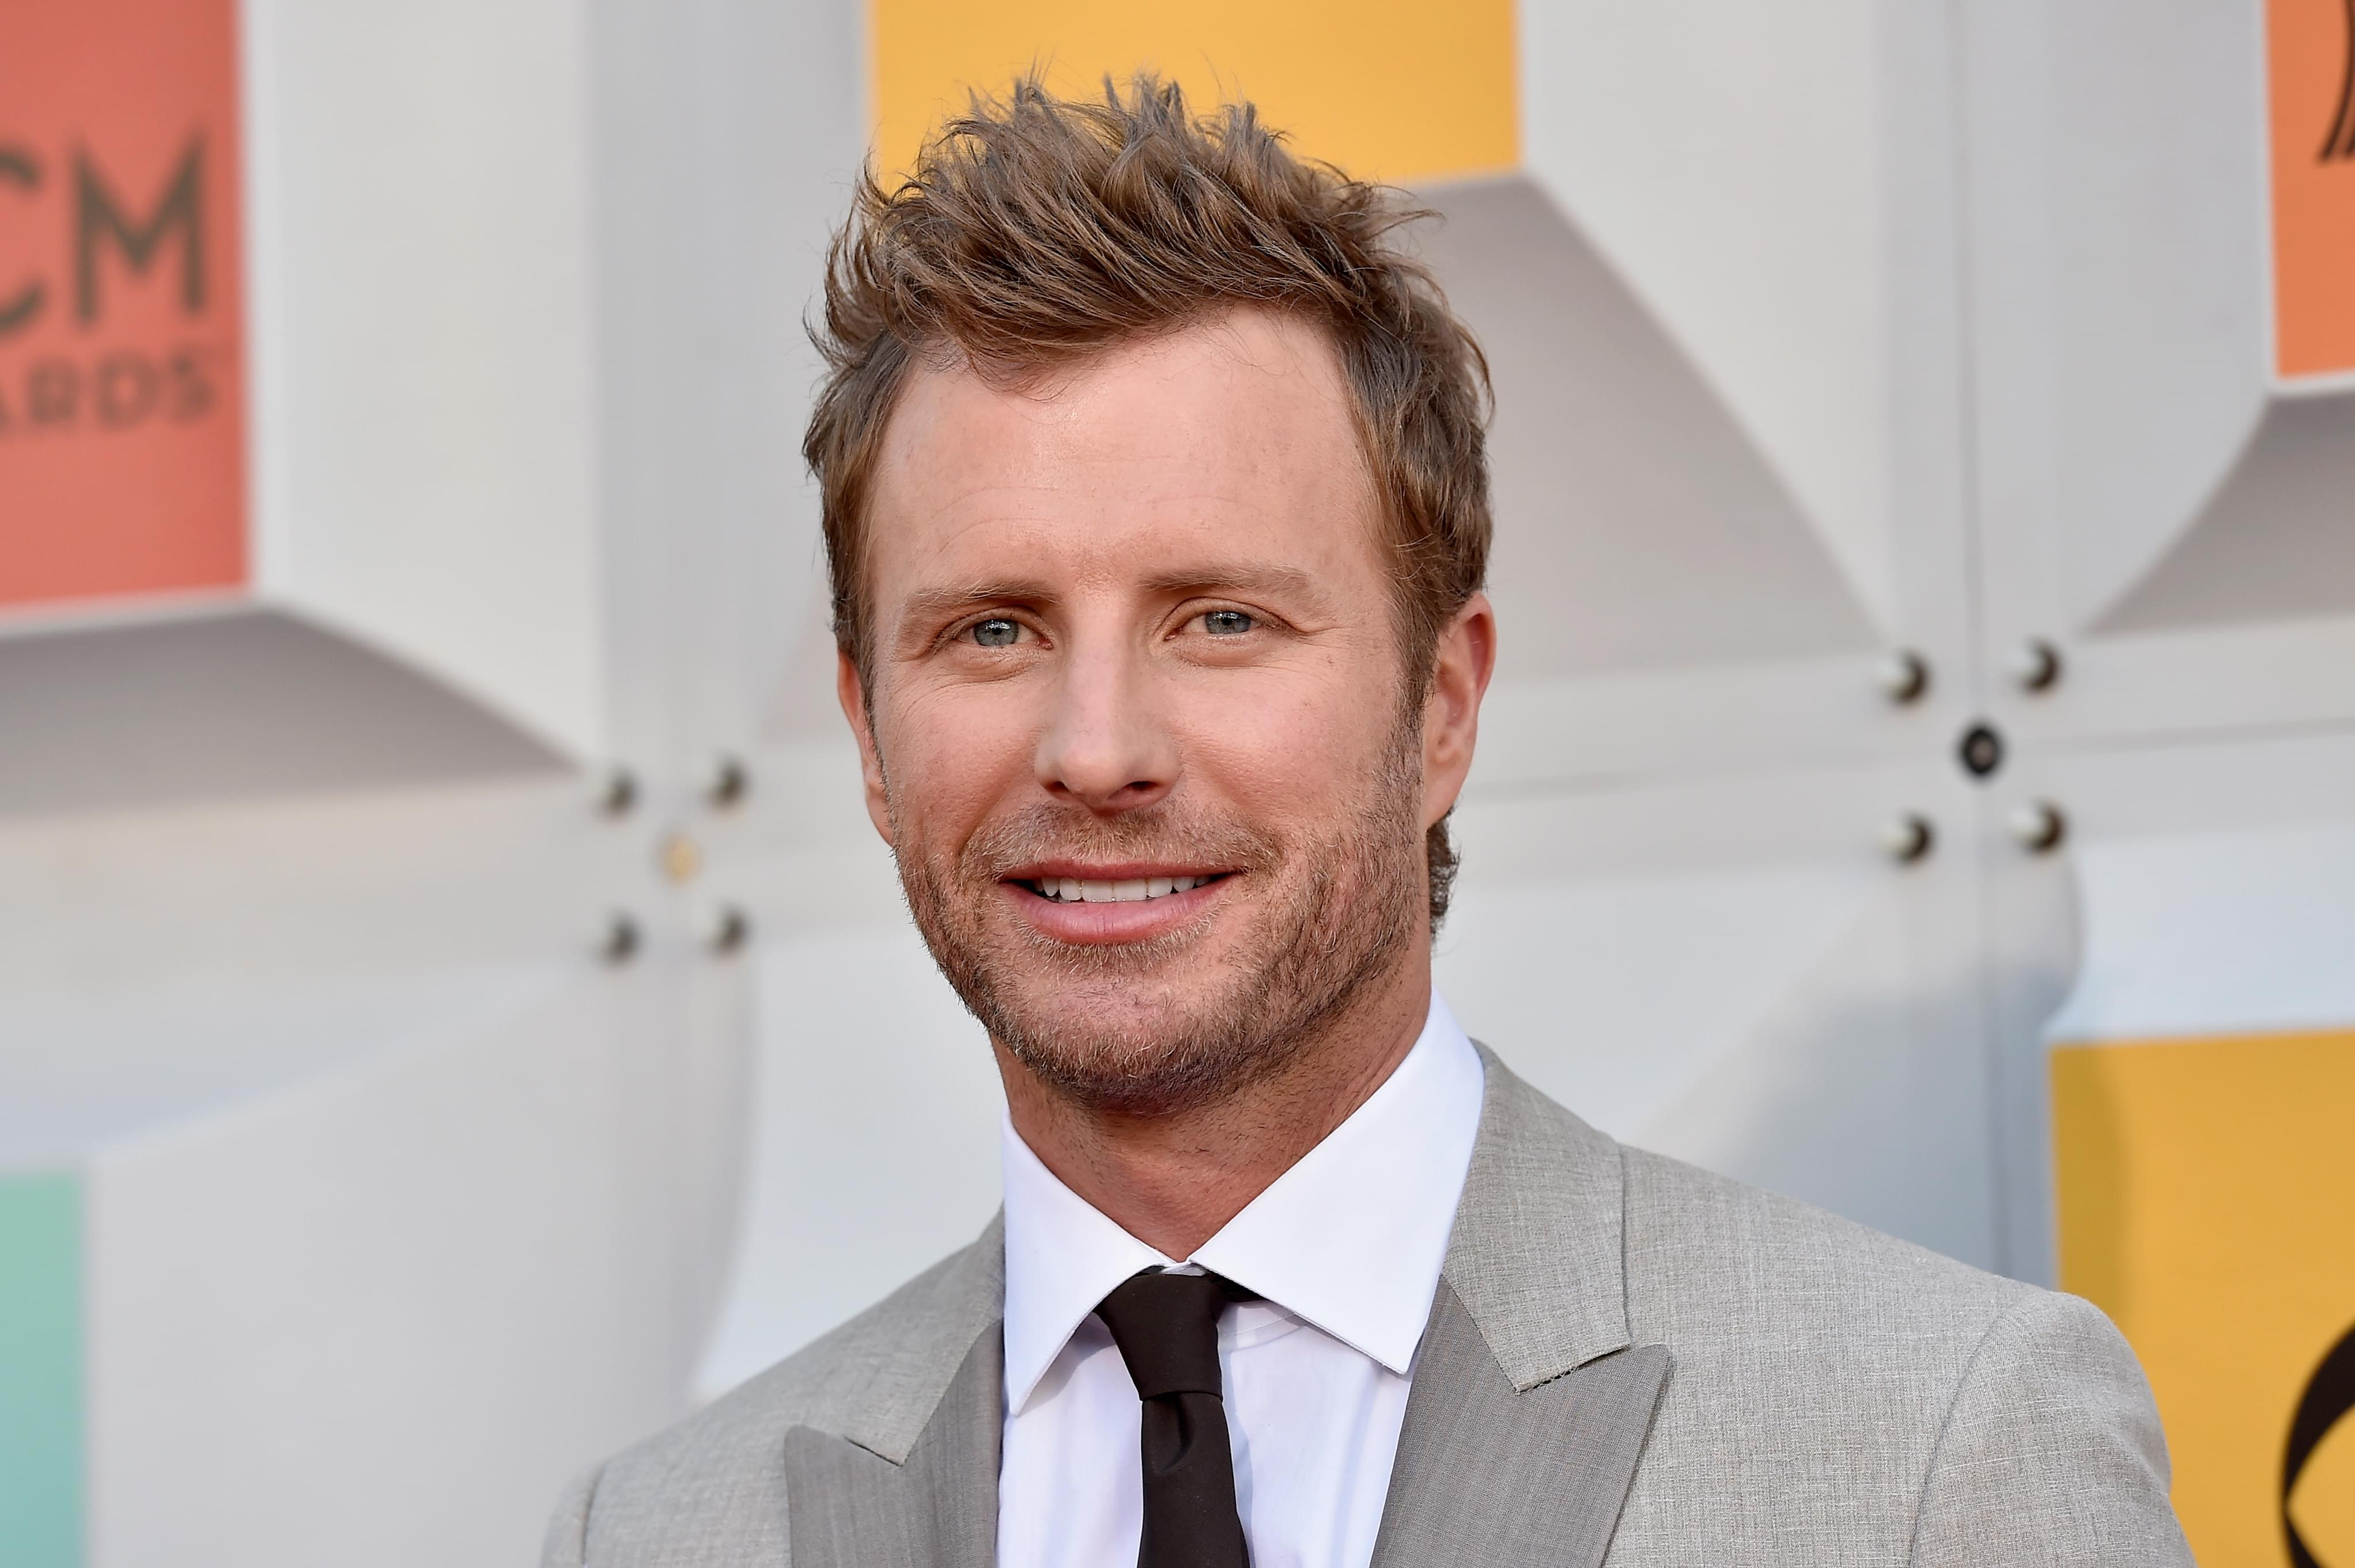 Dierks Bentley Shares Touching Goodbye To His Dog George On Instagram